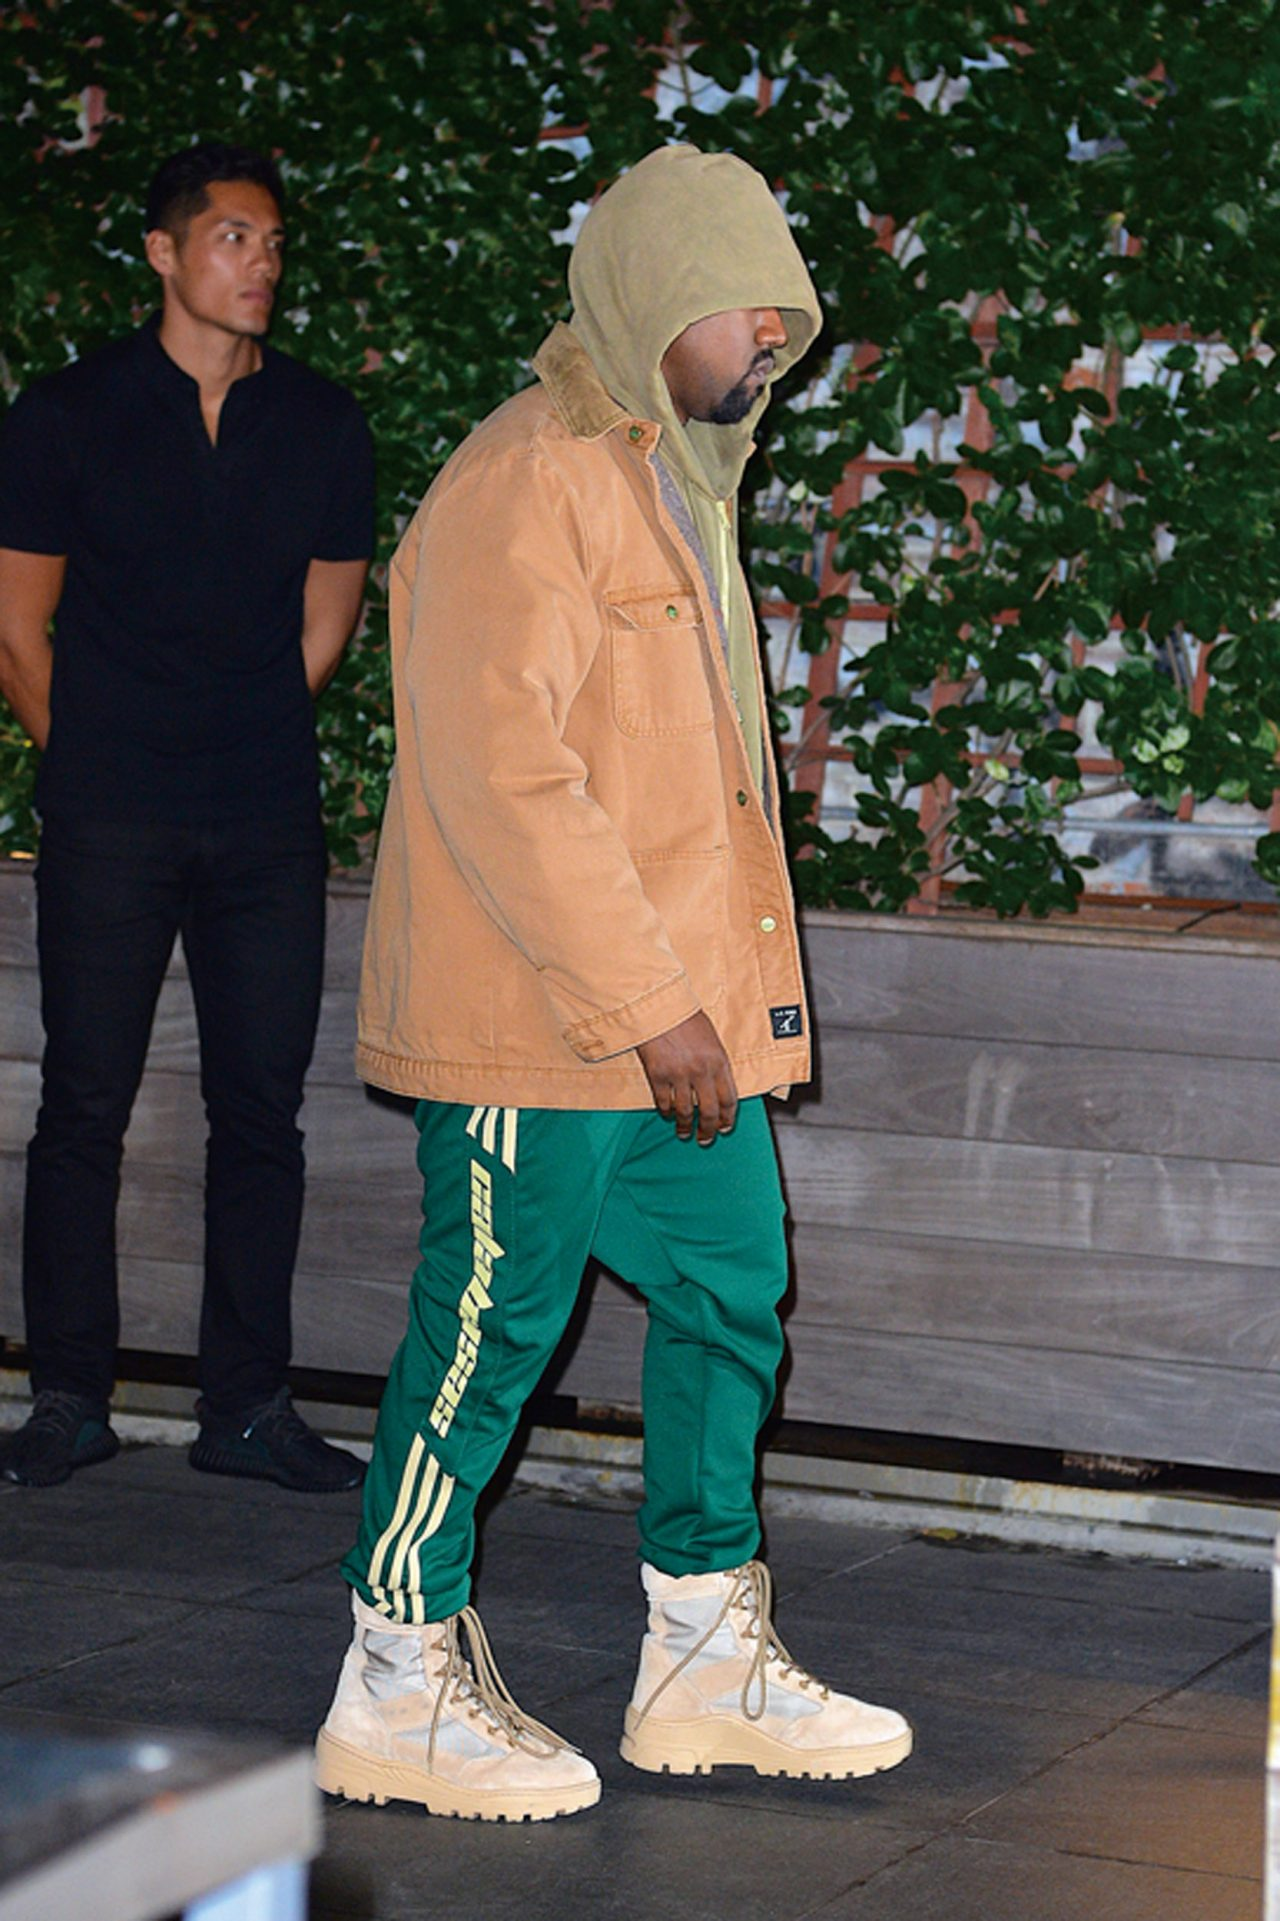 NEW YORK, NY - OCTOBER 04: Kanye West seen out and about in Manhattan on October 4, 2016 in New York City. (Photo by Robert Kamau/GC Images)